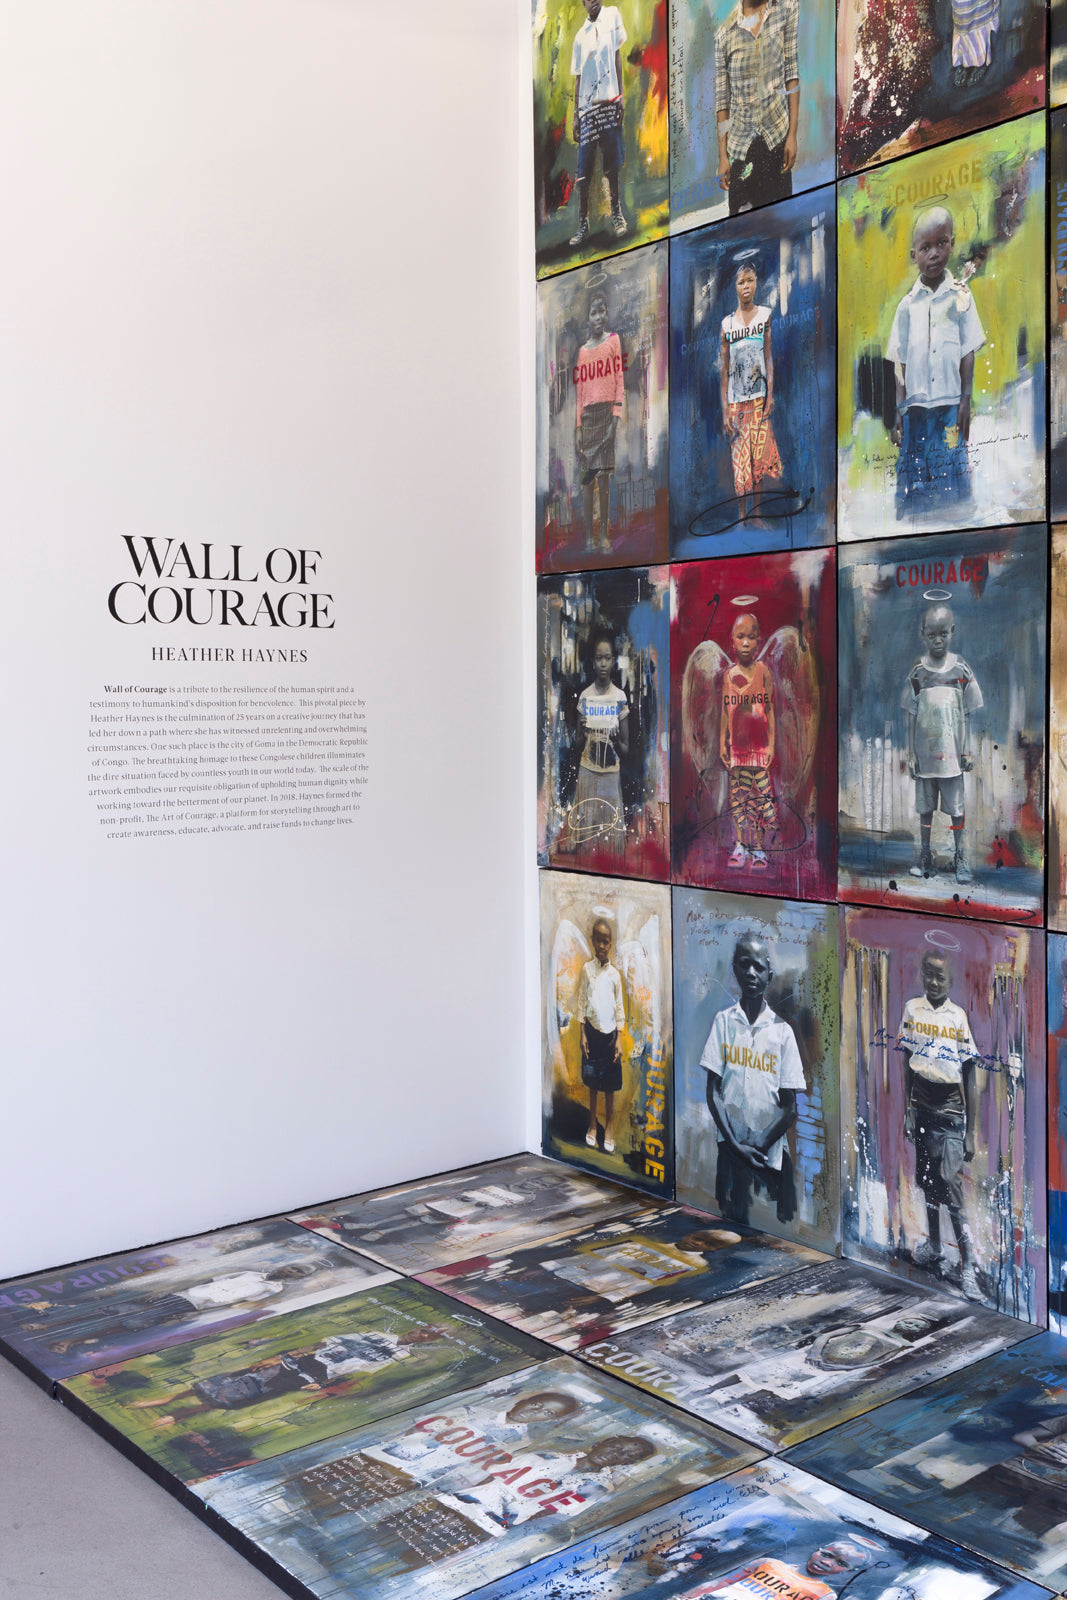 Wall of Courage: David